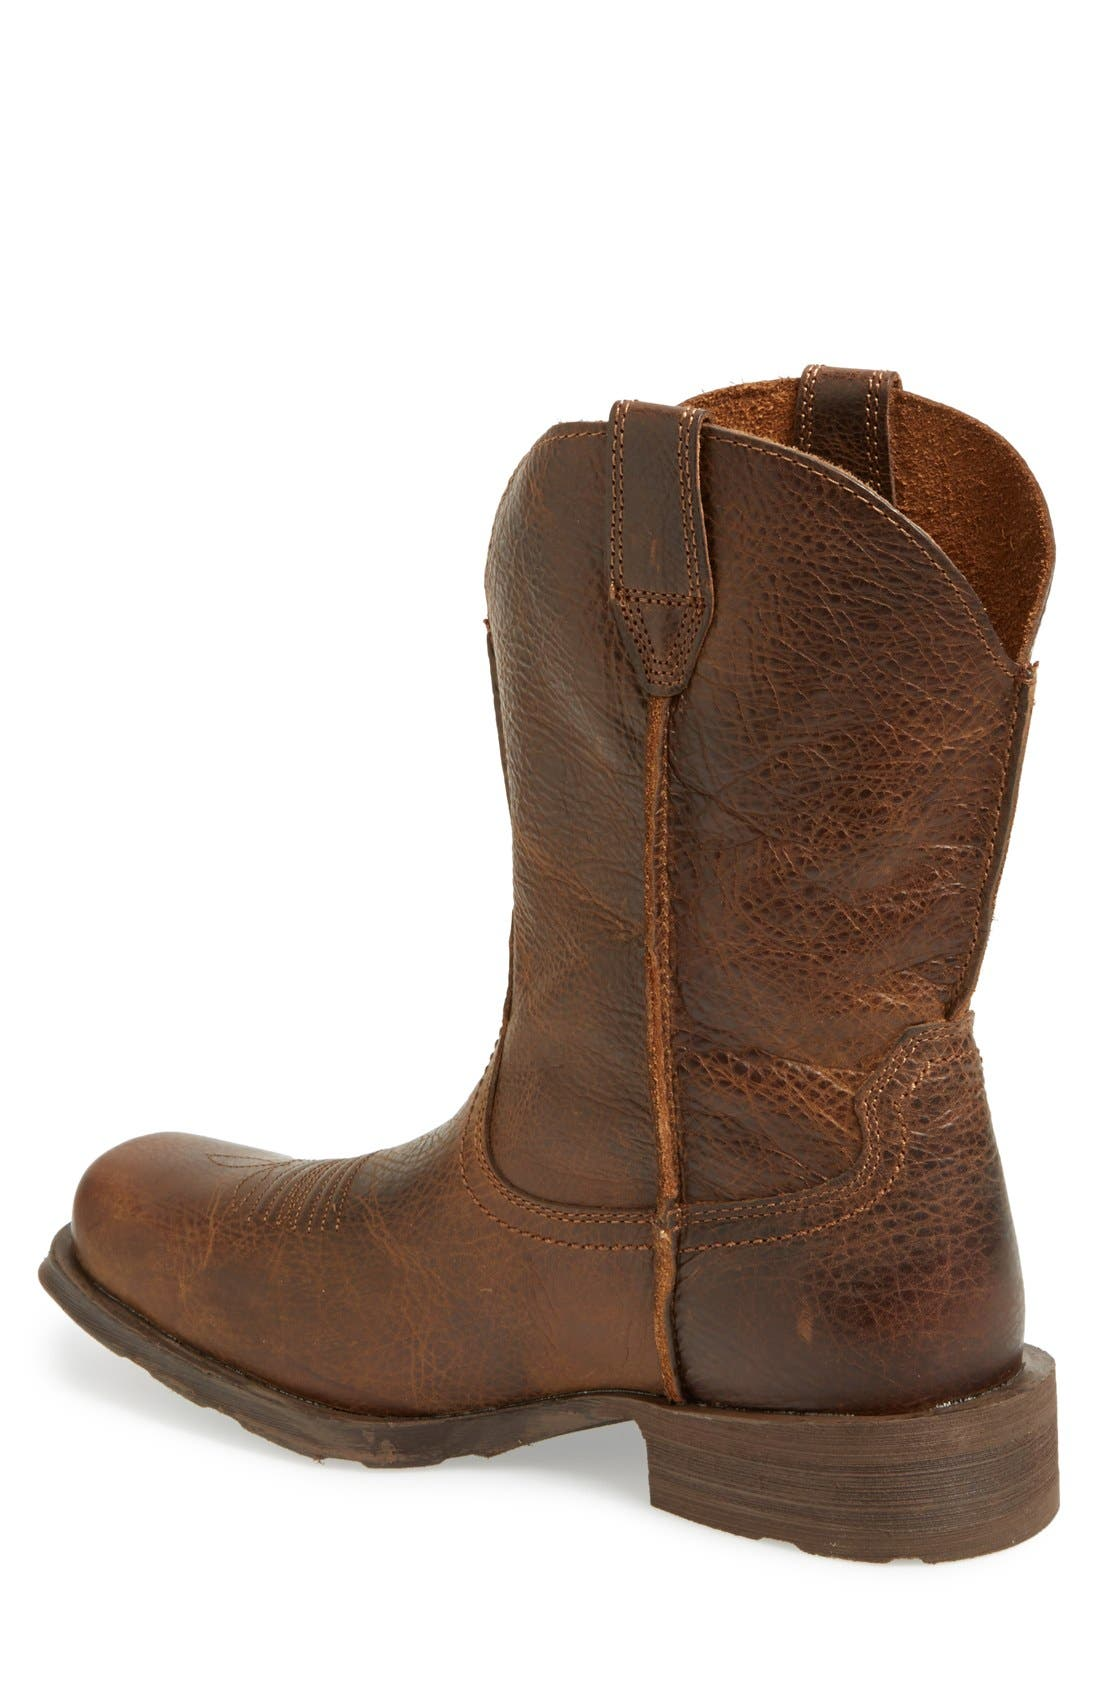 'Rambler' Square Toe Leather Cowboy Boot,                             Alternate thumbnail 3, color,                             BROWN